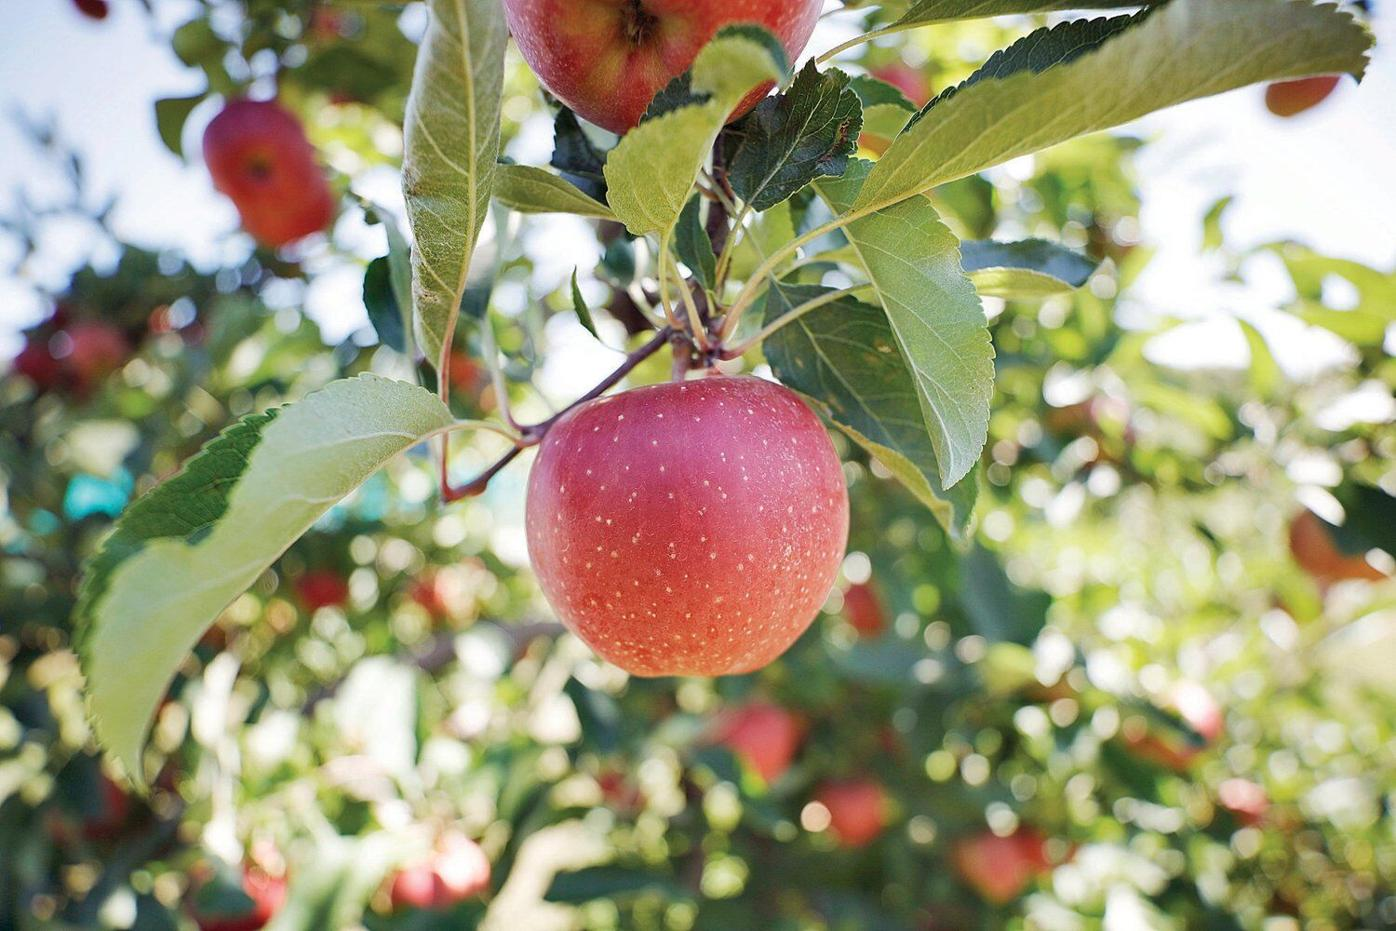 It's pick-your-own season, with new protocols